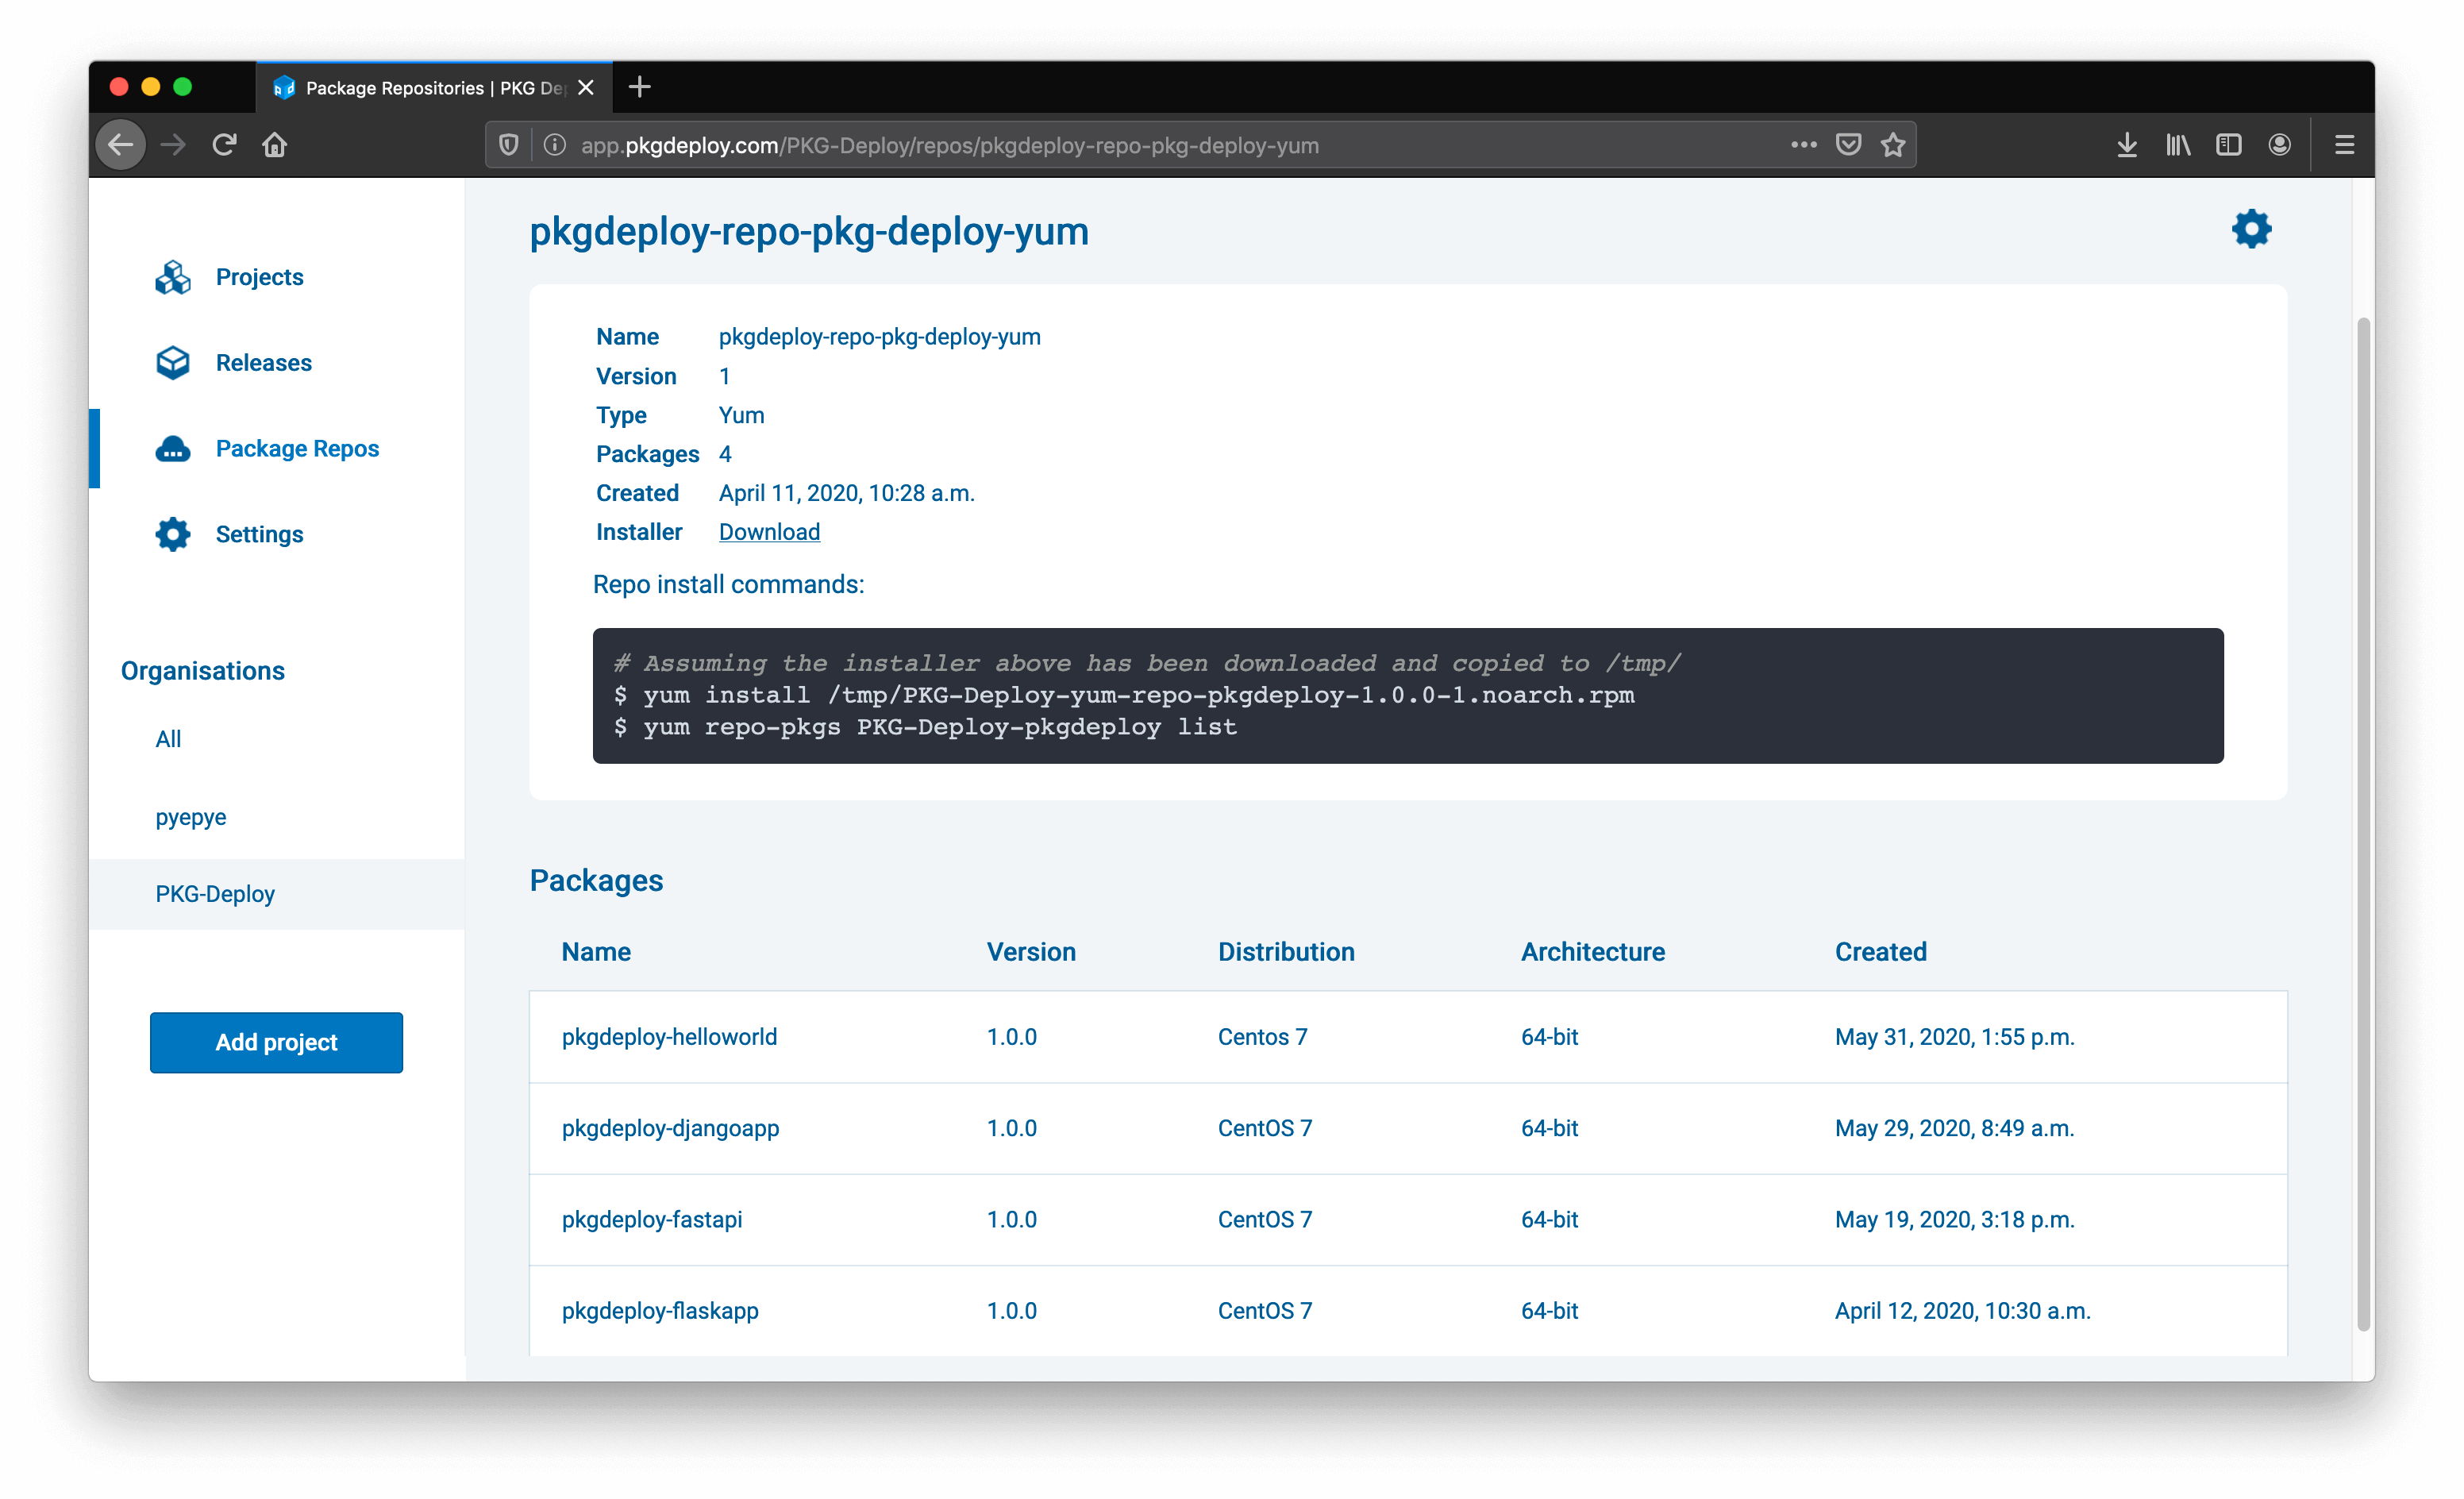 Screenshot of the PKG Deploy package repo page